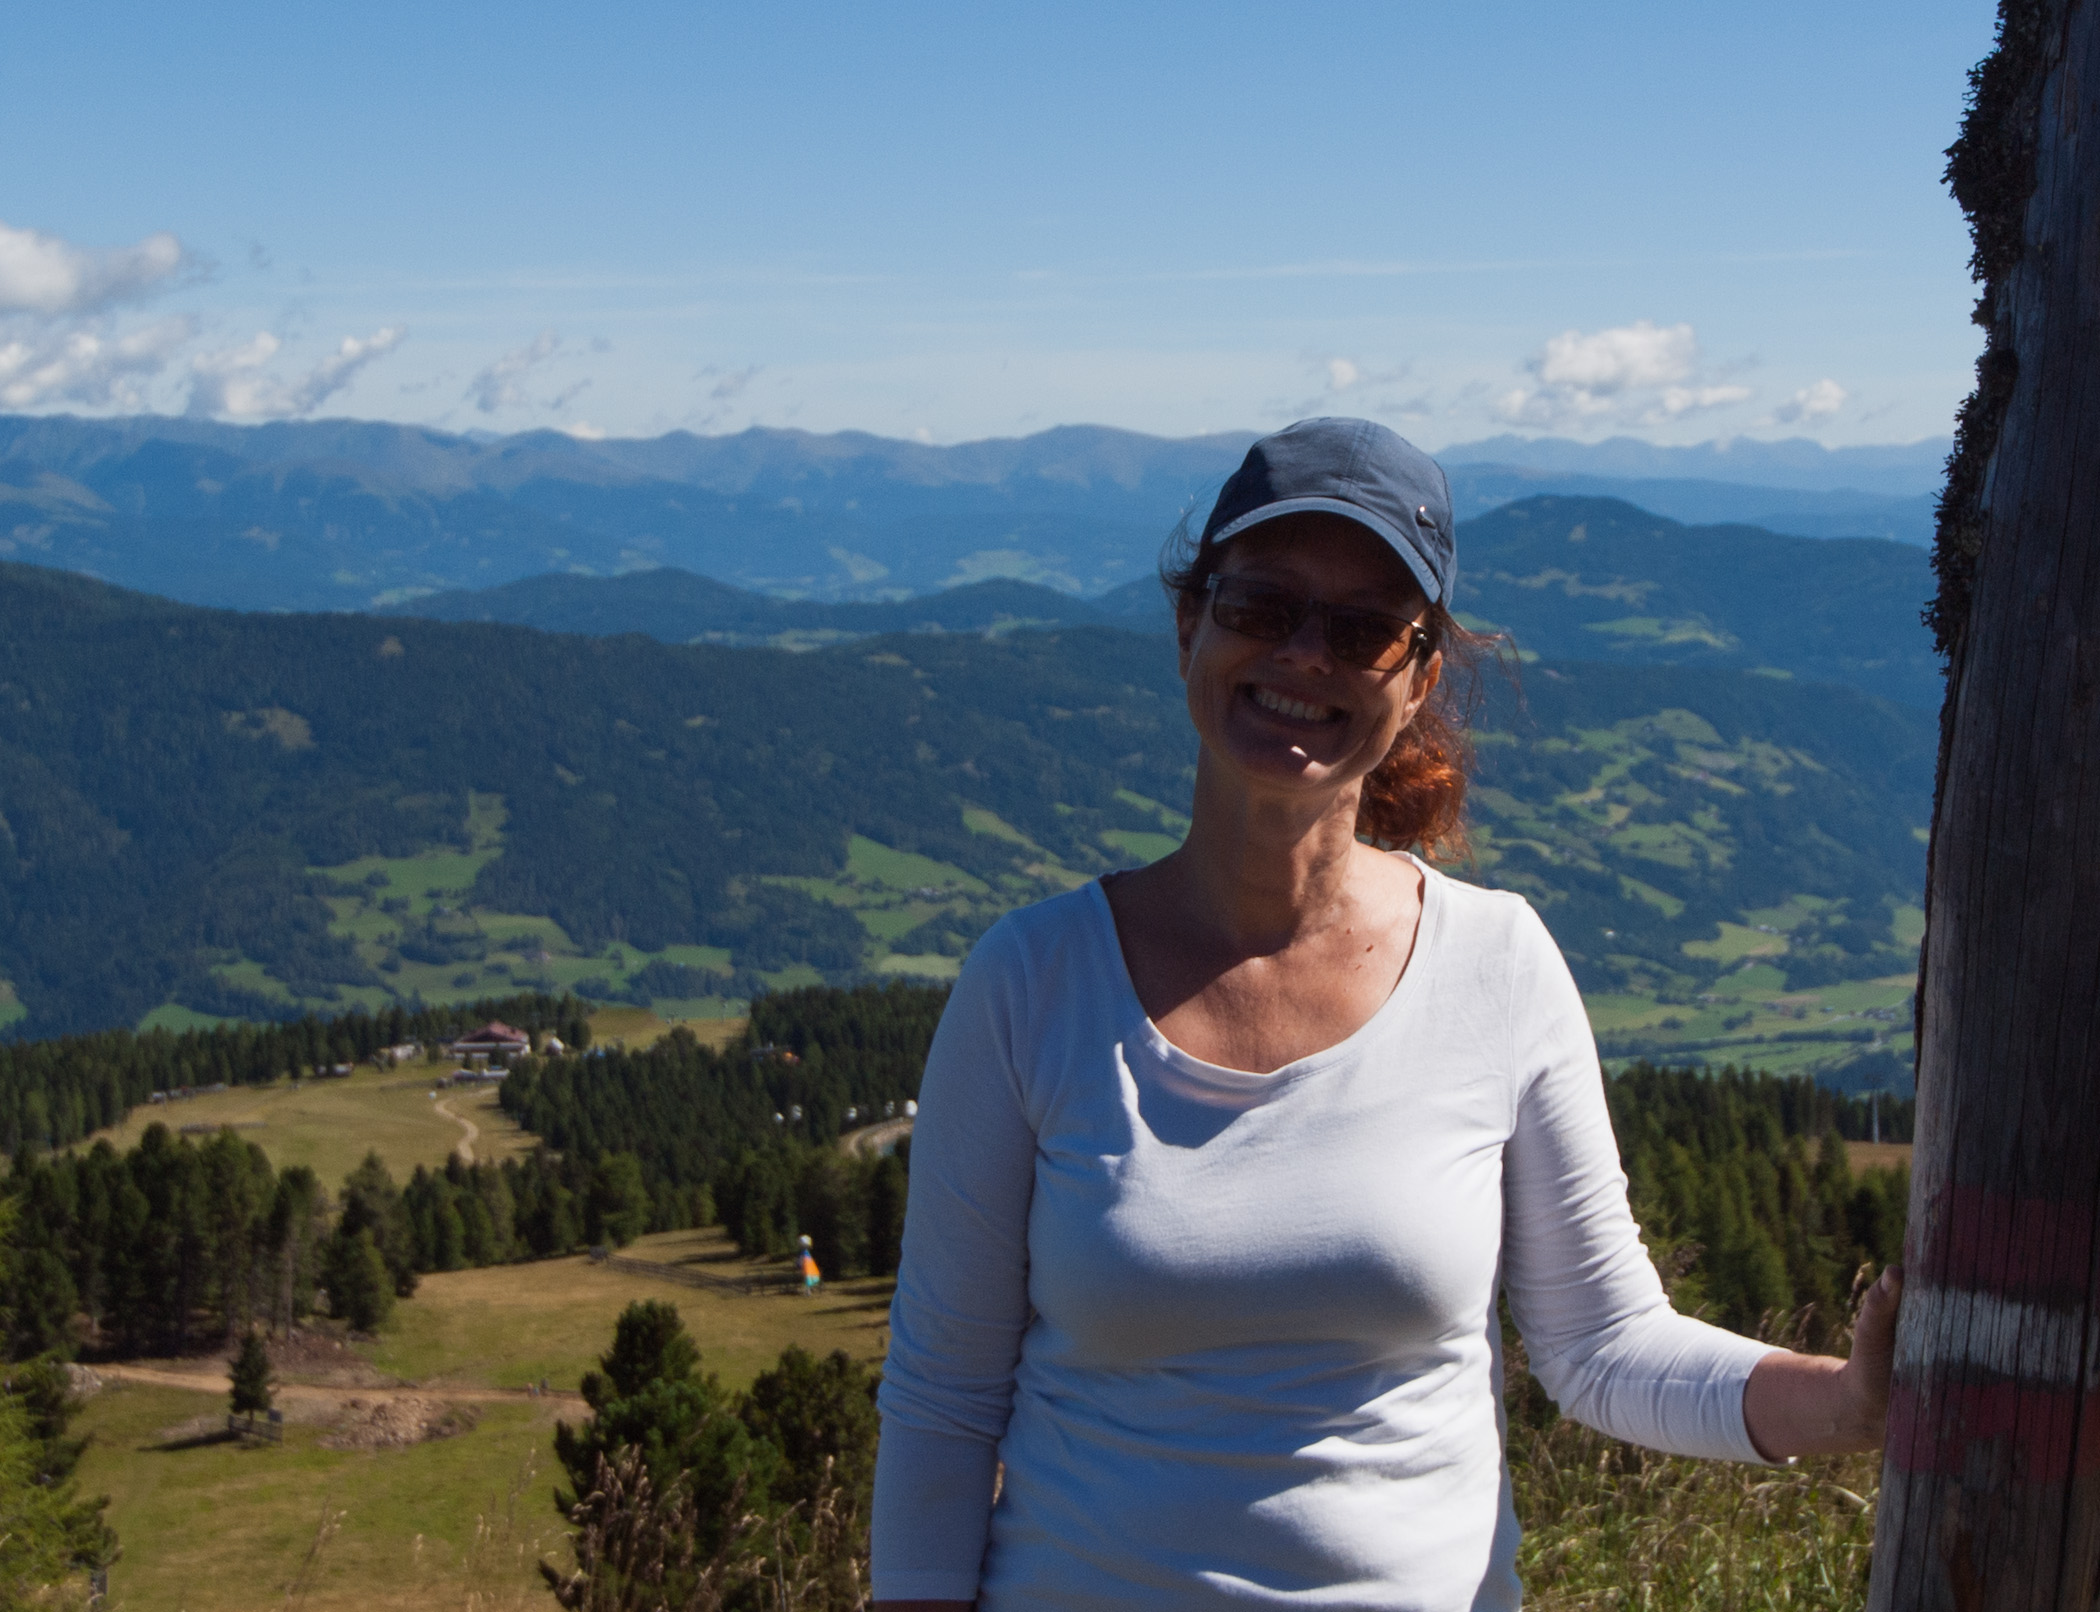 Enjoying the sun and views in the Kreischberg - Murau region